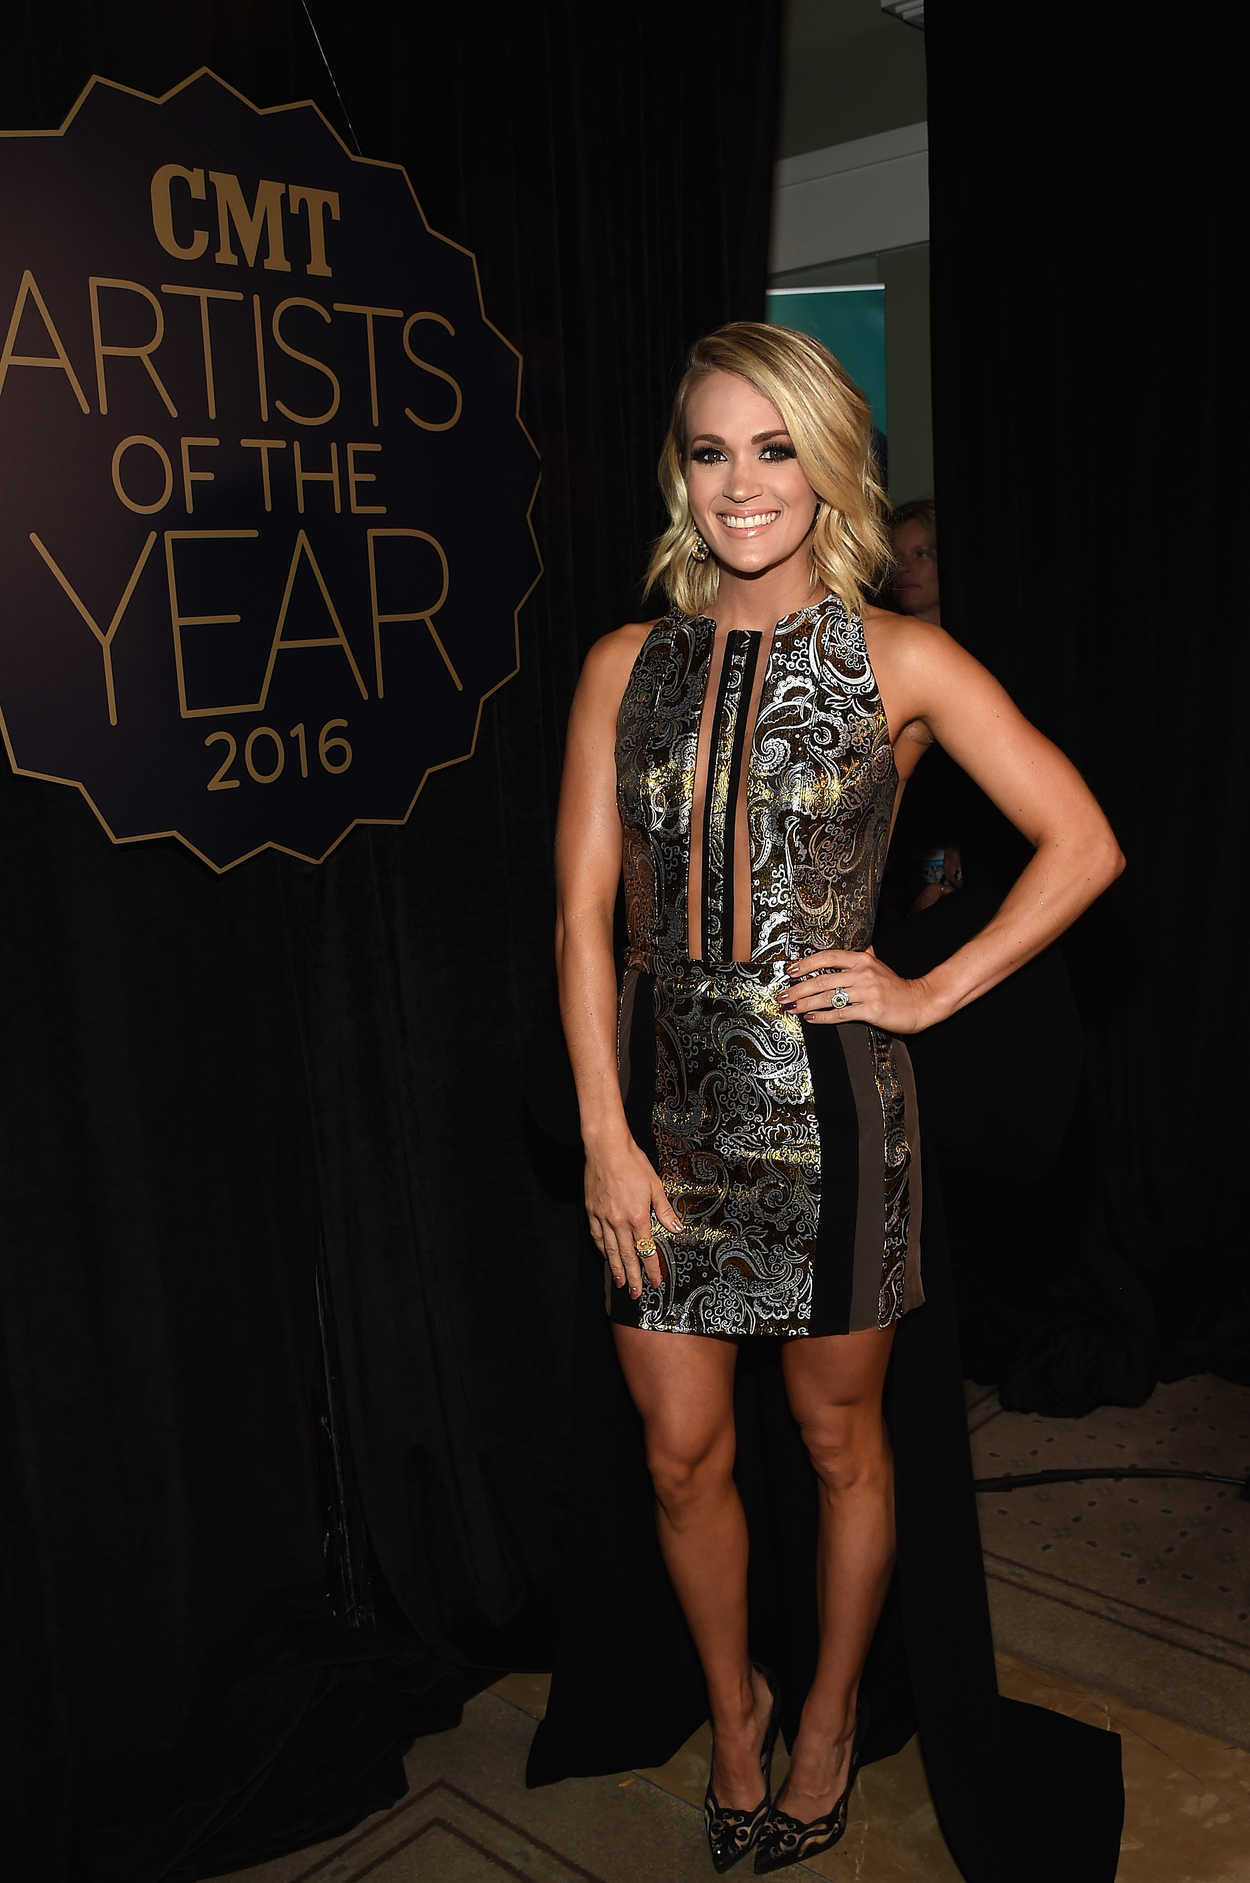 Carrie Underwood At The 2016 Cmt Artists Of The Year In Nashville 10 1...